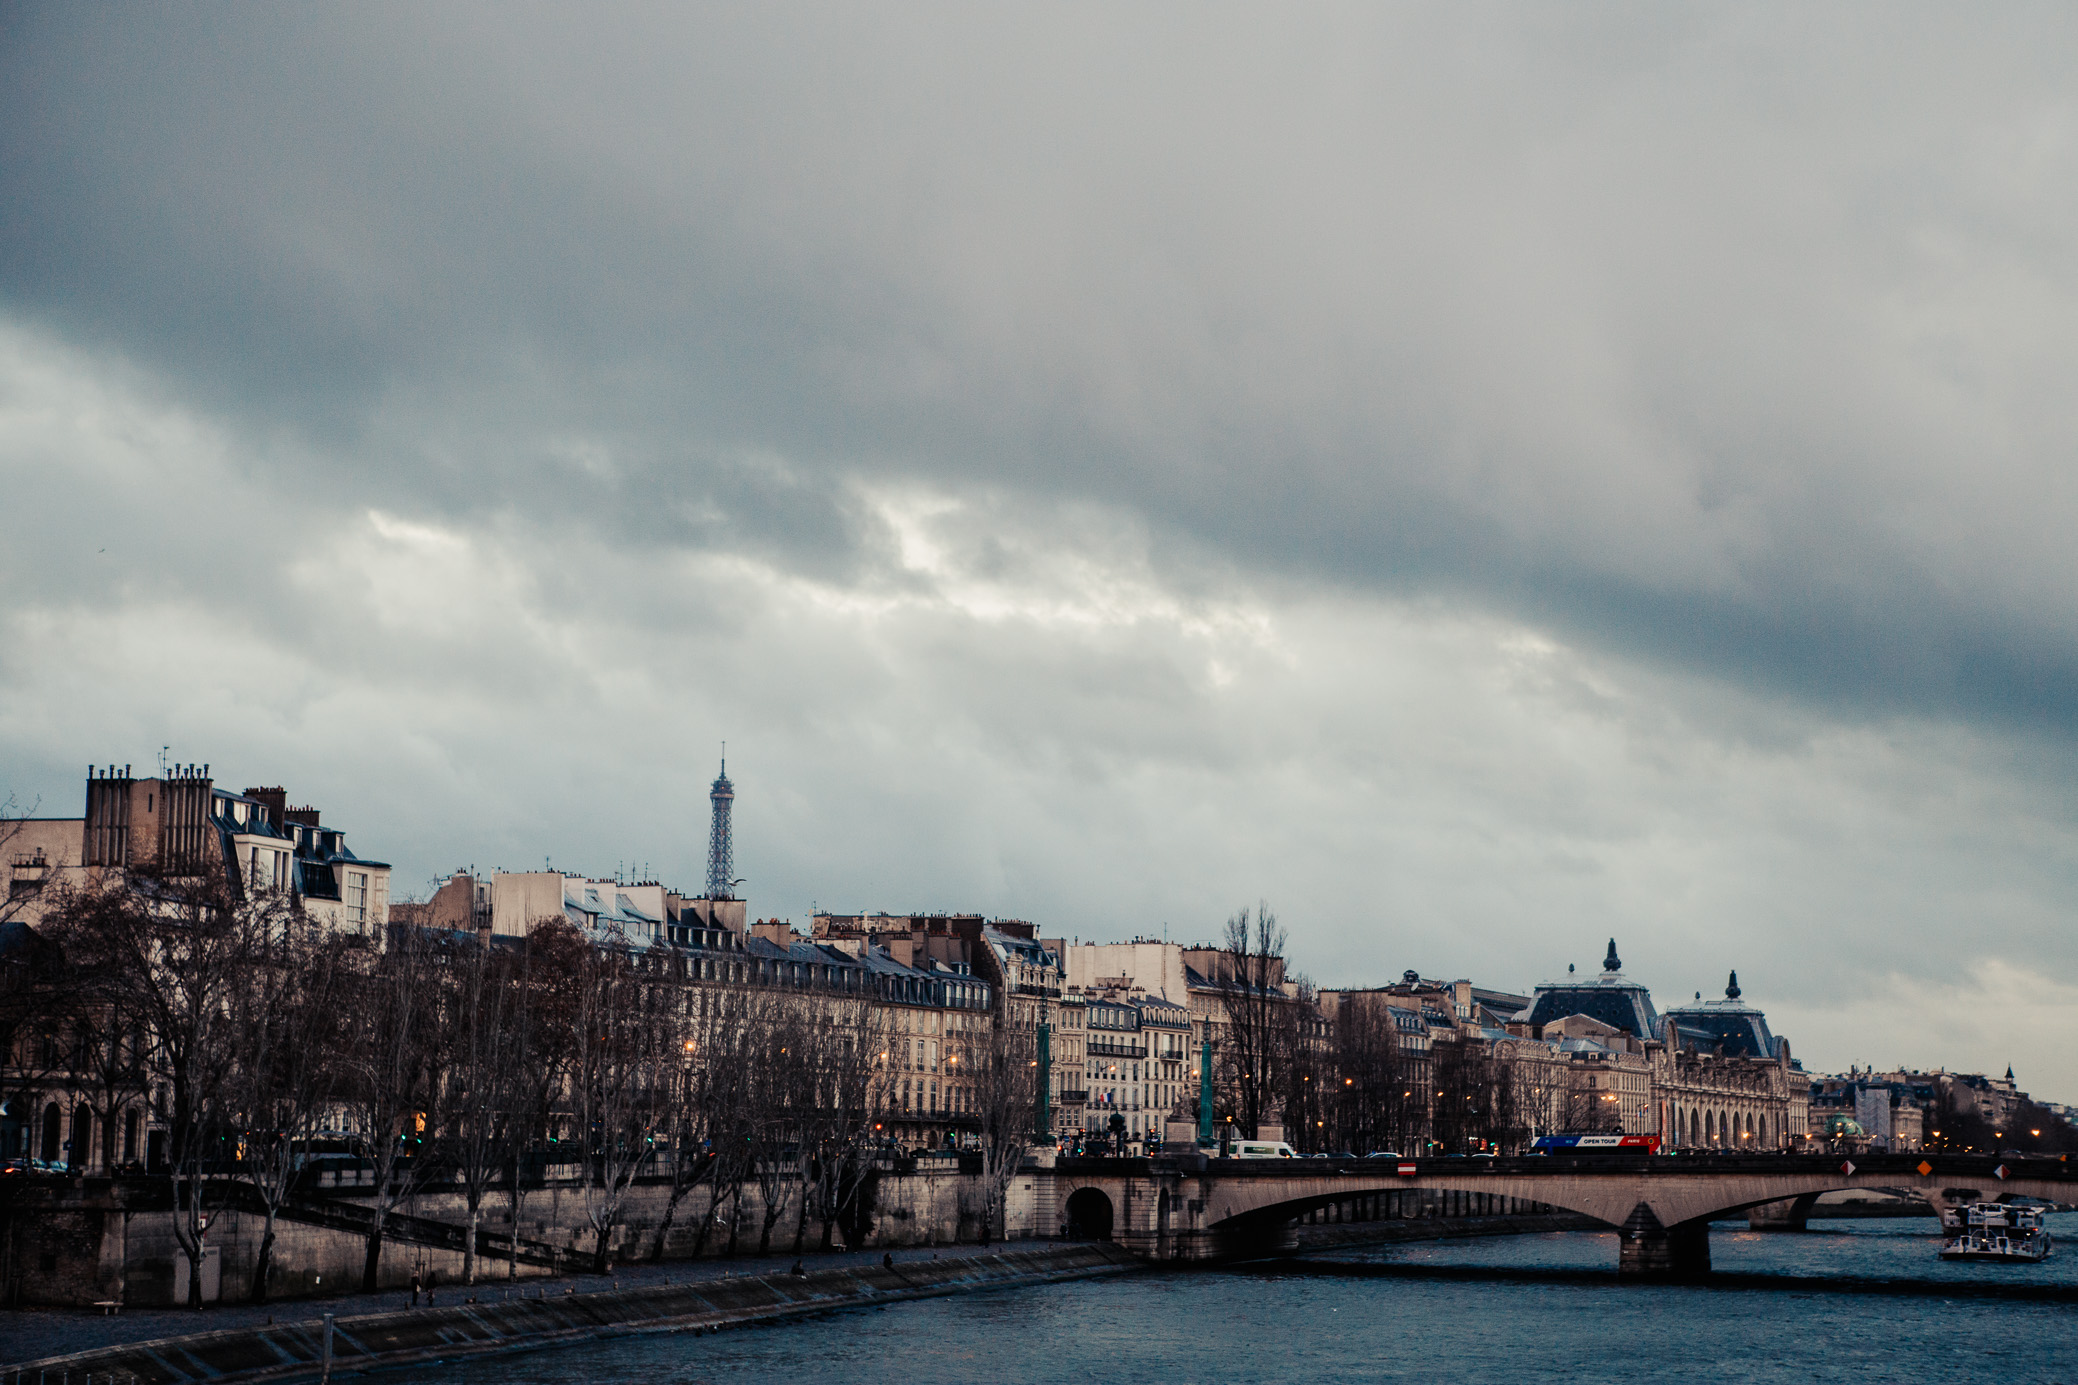 The Seine | Paris, France | December 9th, 2018 | (Photo by David A. Smith / DSmithScenes)